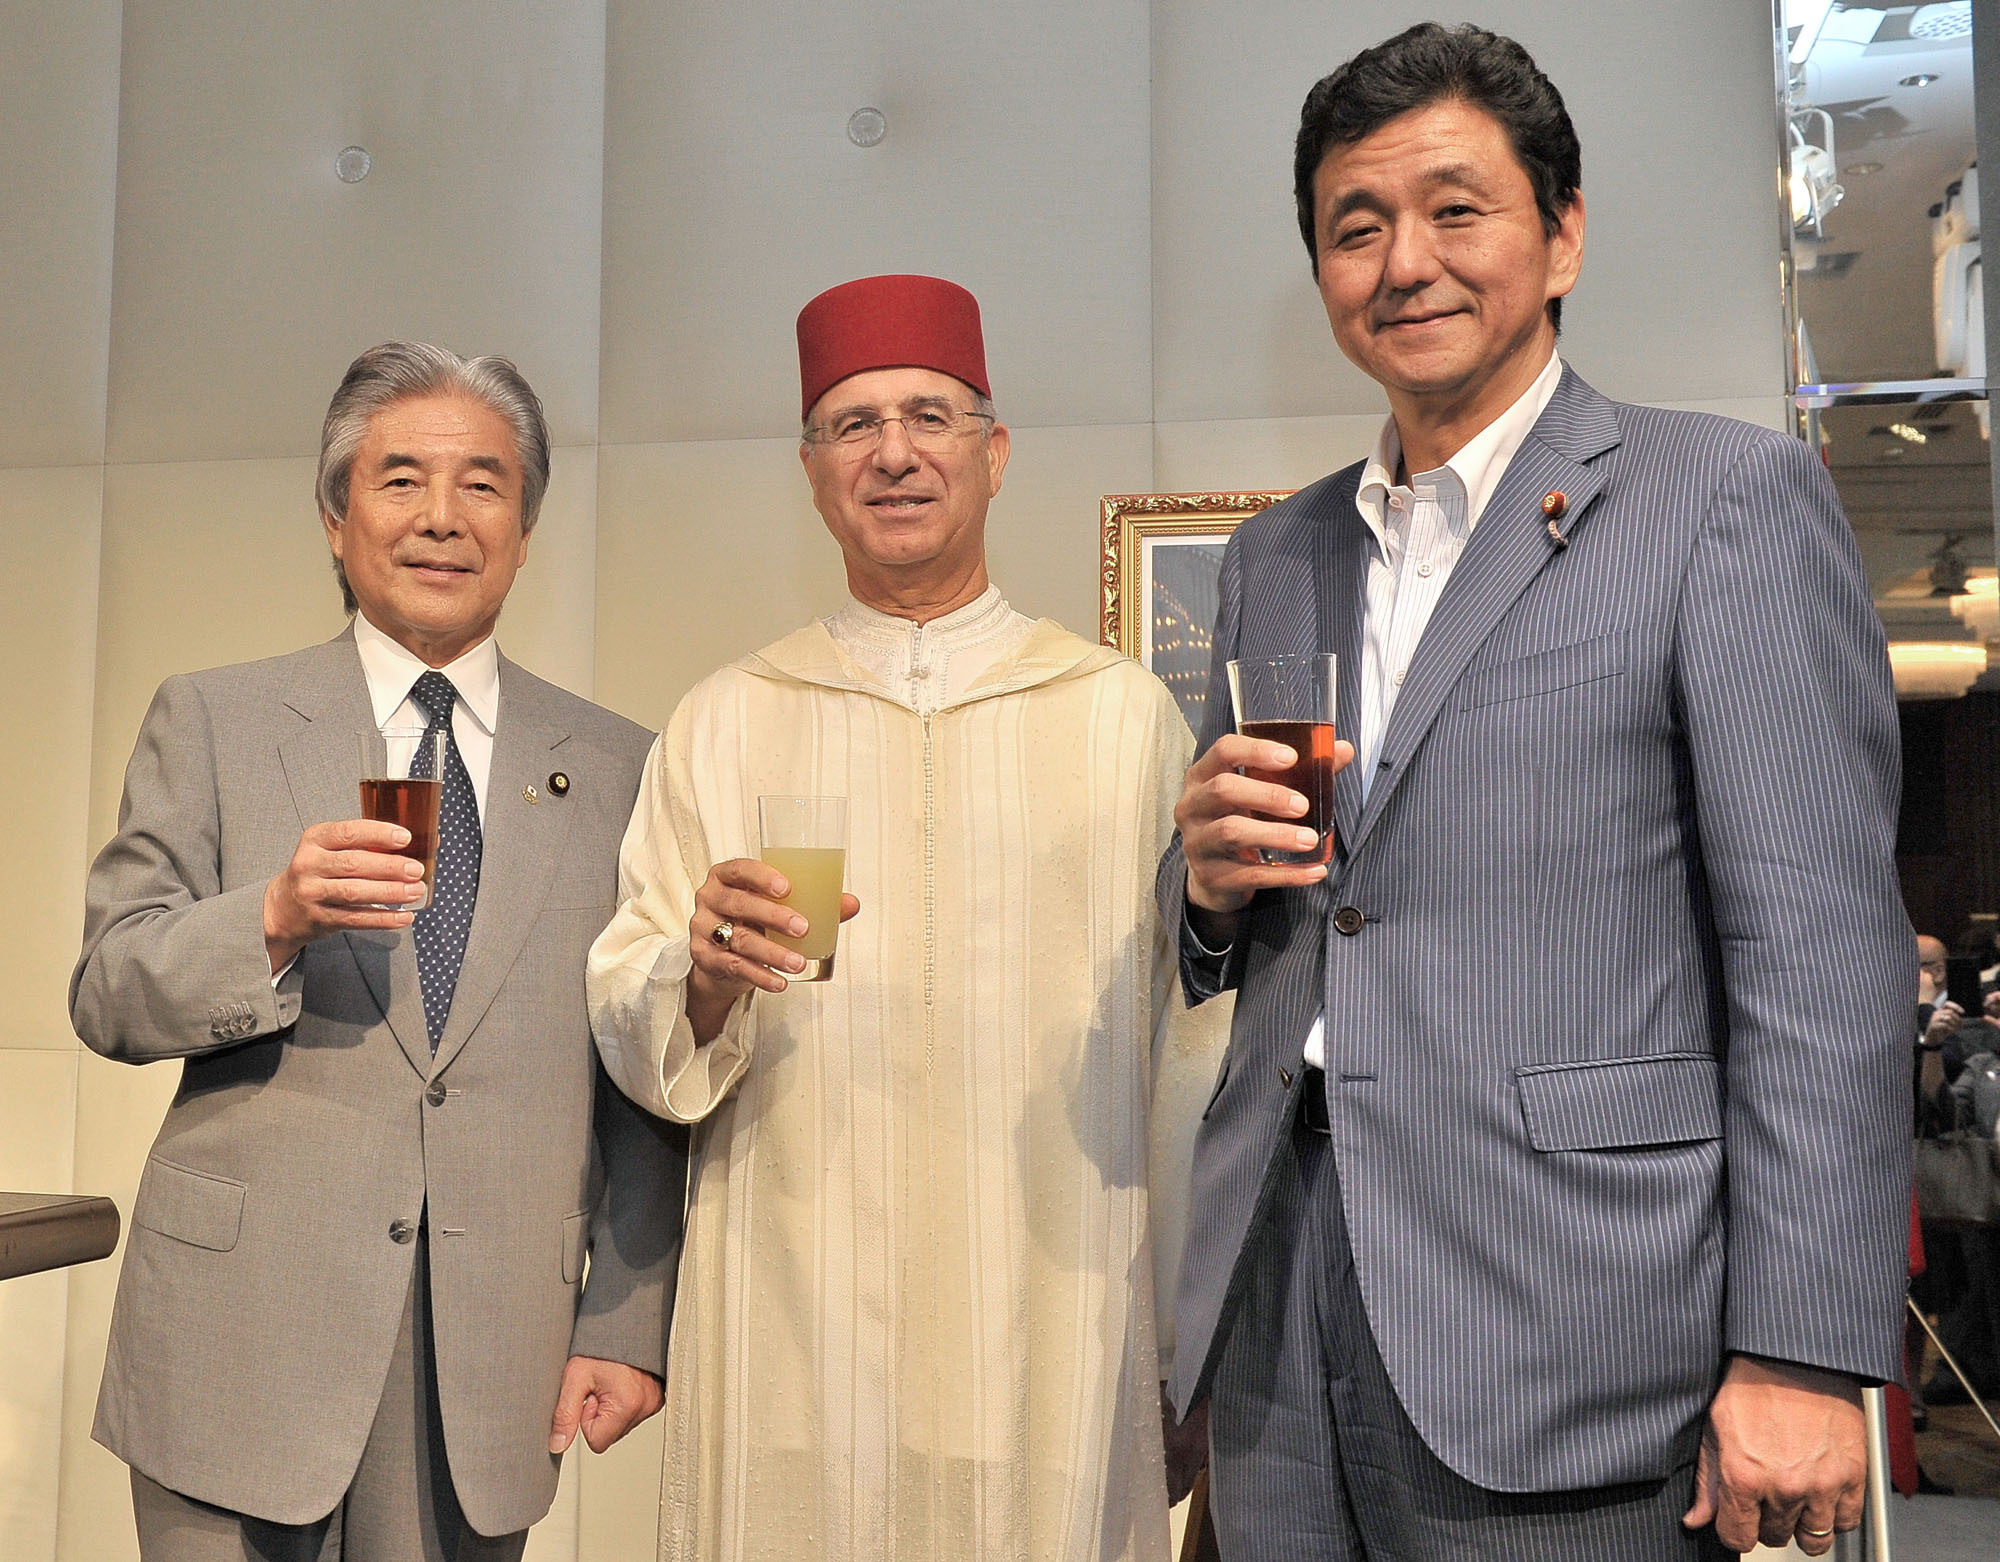 Moroccan Ambassador Rachad Bouhlal (center) poses for a photo alongside Hirofumi Nakasone (left), president of the Japan-Morocco Parliamentary League, and Nobuo Kishi, state minister of foreign affairs, during a reception at Palace Hotel Tokyo on July 31 to celebrate the anniversary of Mohammed VI's accession to the throne. |  YOSHIAKI MIURA